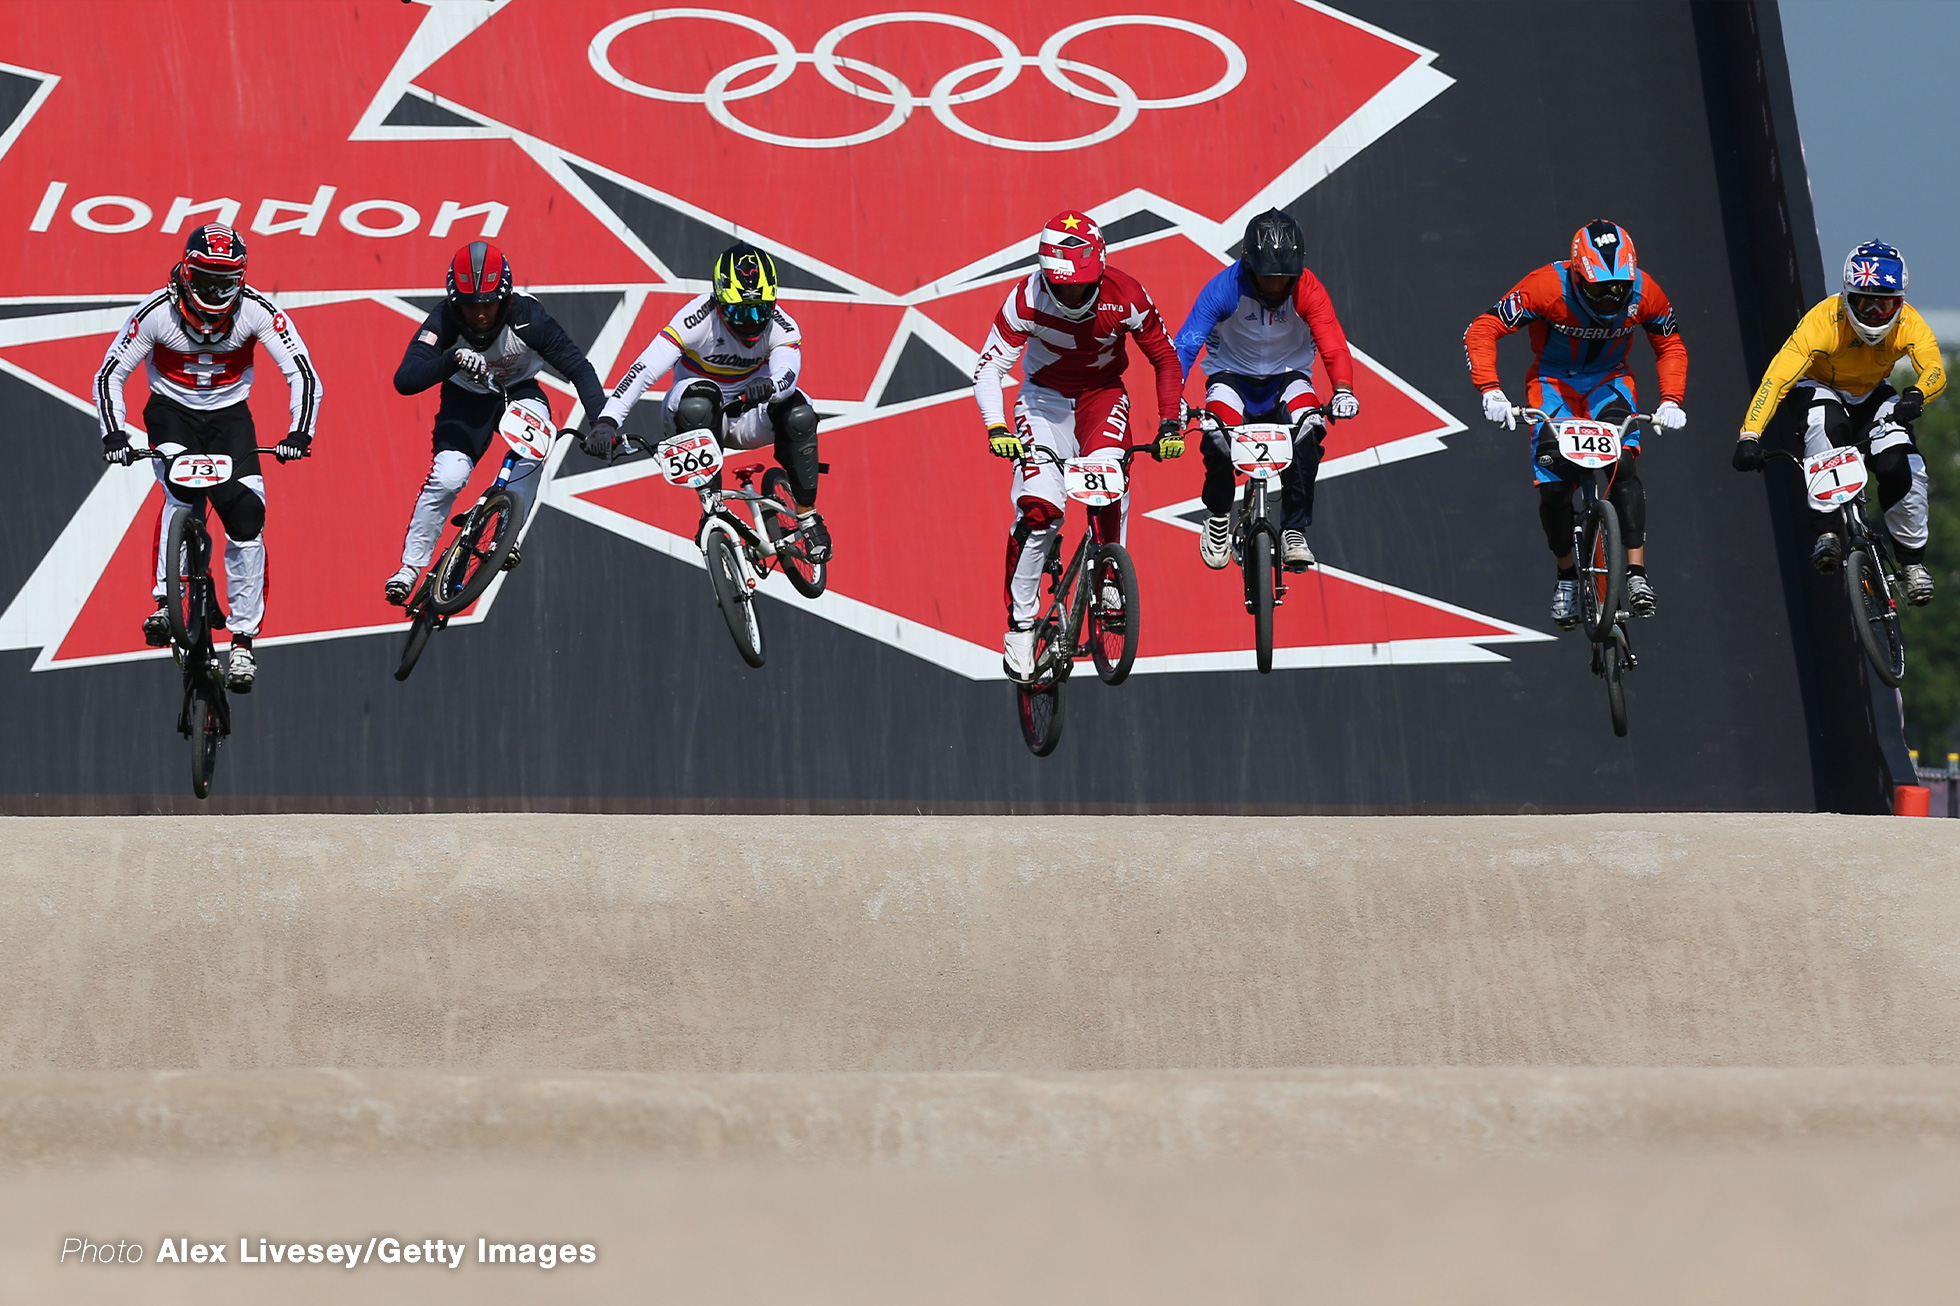 LONDON, ENGLAND - AUGUST 10: The field race down the starting ramp in the Men's BMX Cycling Final on Day 14 of the London 2012 Olympic Games at the BMX Track on August 10, 2012 in London, England. (Photo by Alex Livesey/Getty Images)